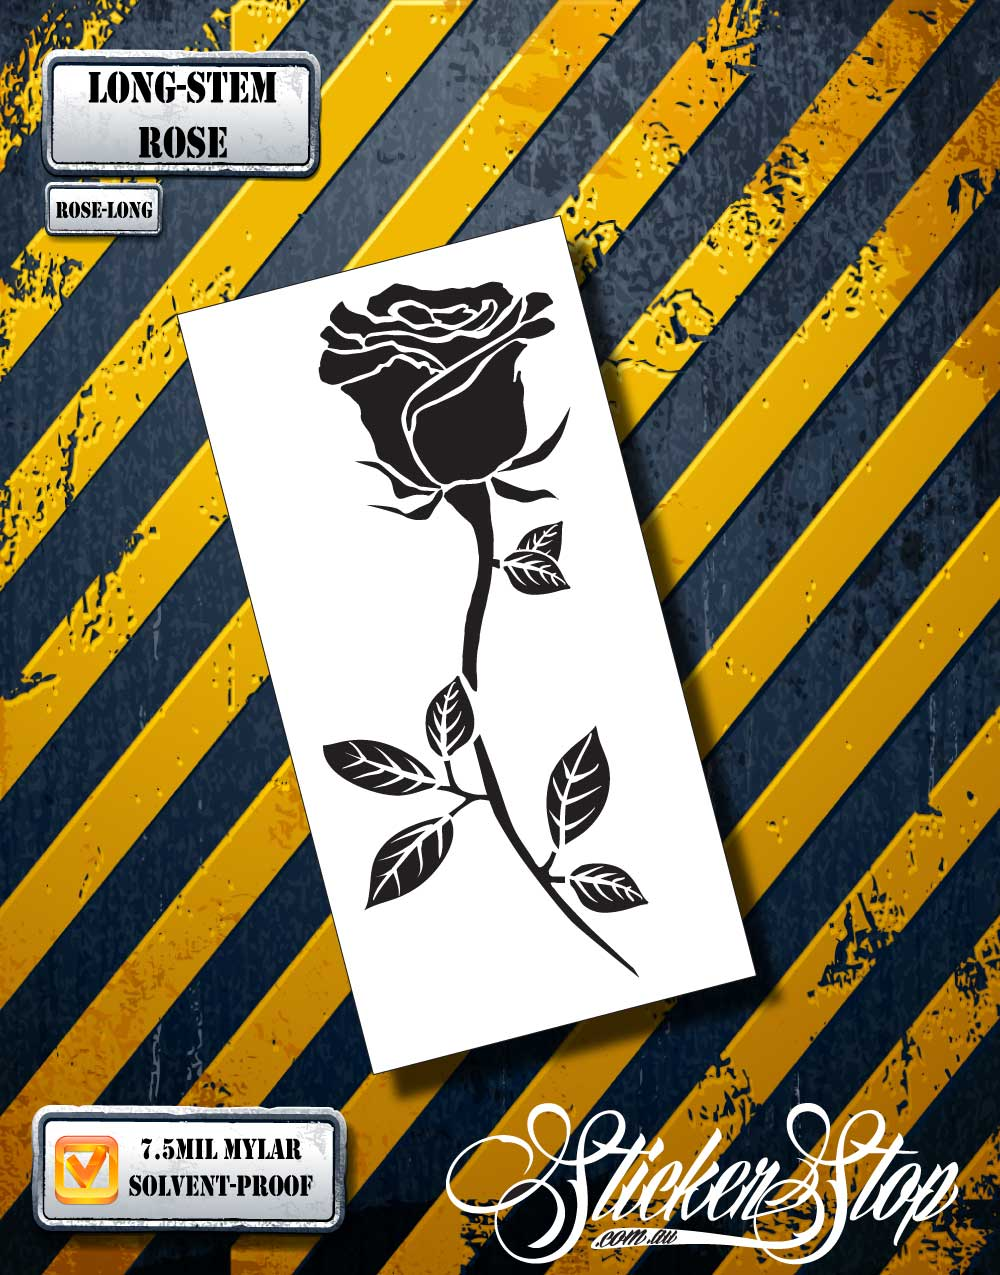 Long-Stem Rose Airbrush Stencil